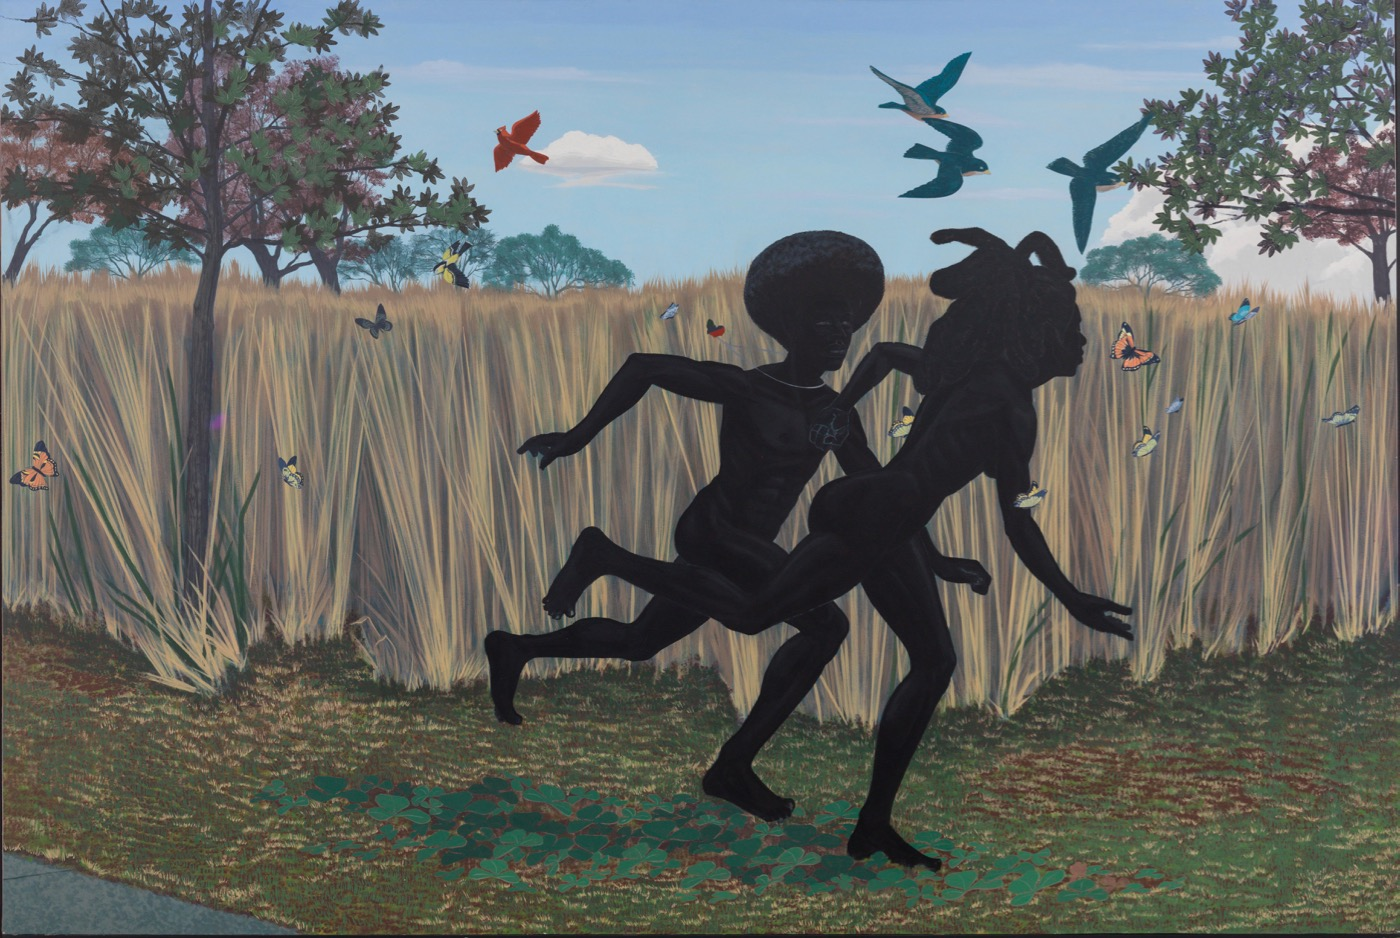 """Kerry James Marshall, """"Vignette"""" (2003) Acrylic on fiberglass 72 in. × 9 ft. (182.9 × 274.3 cm) (All photos courtesy of Kerry James Marshall)"""